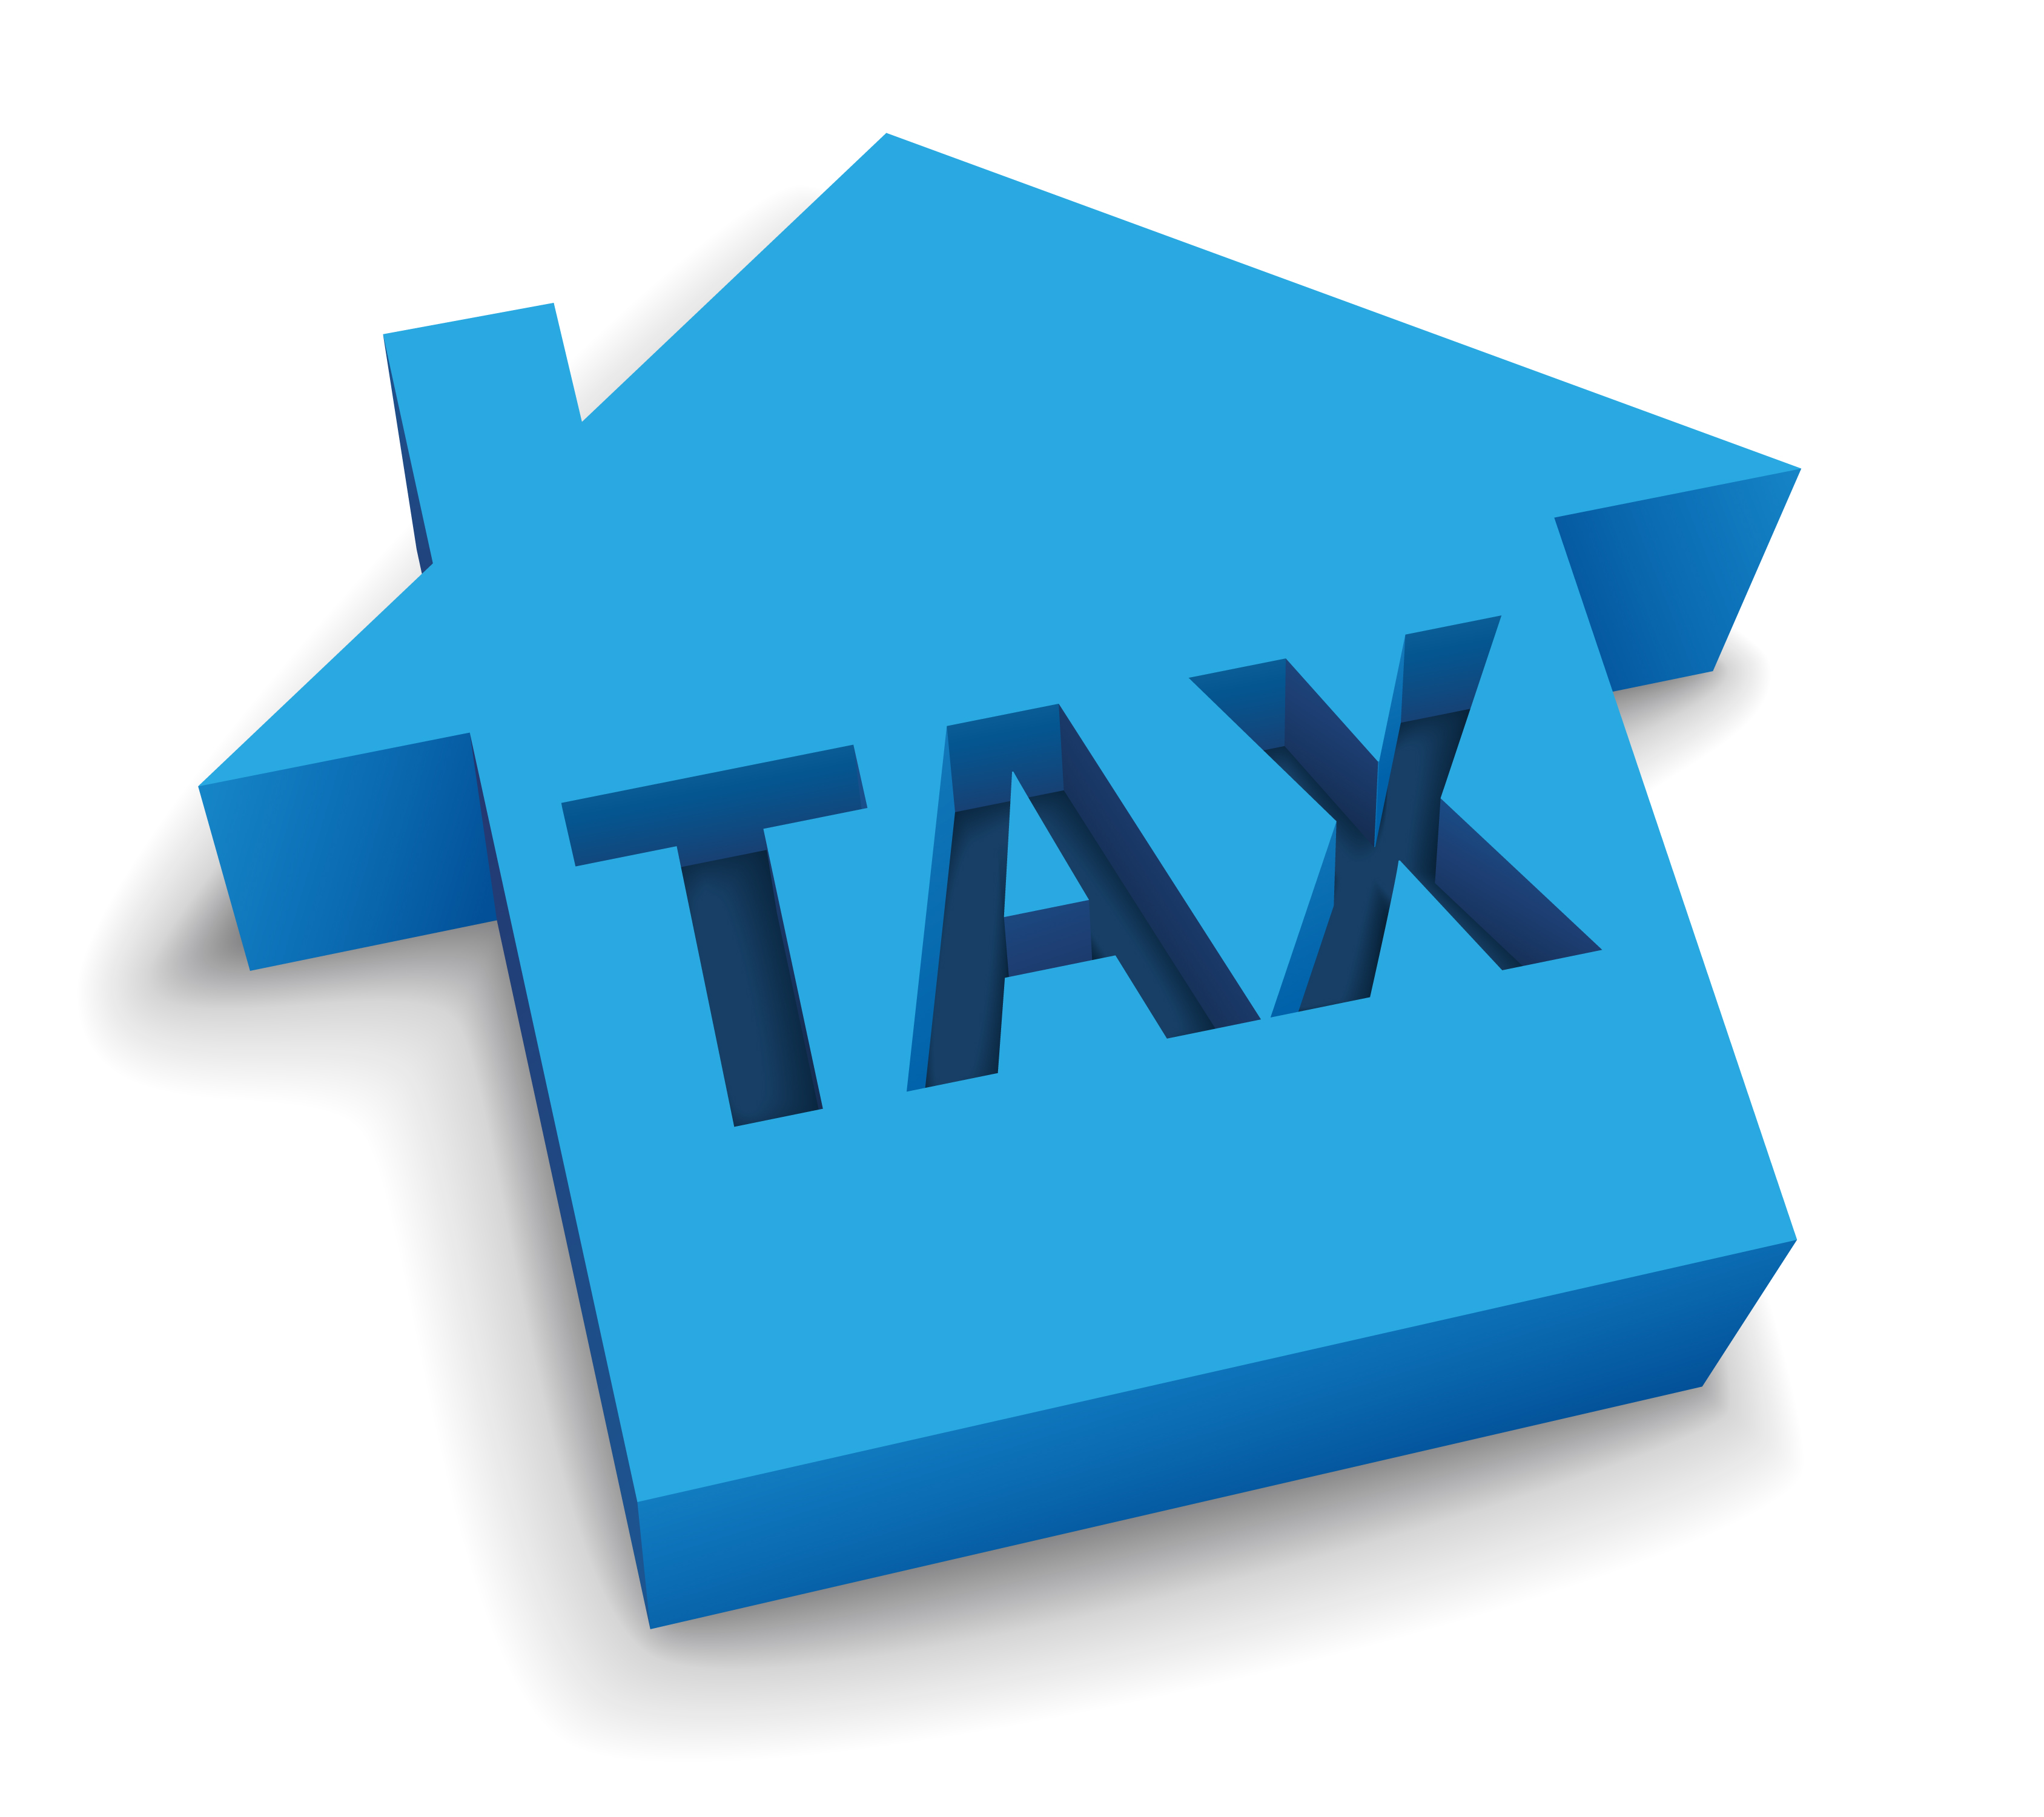 Danger of Serious House Price Fall Due to Buy to Let Tax Changes